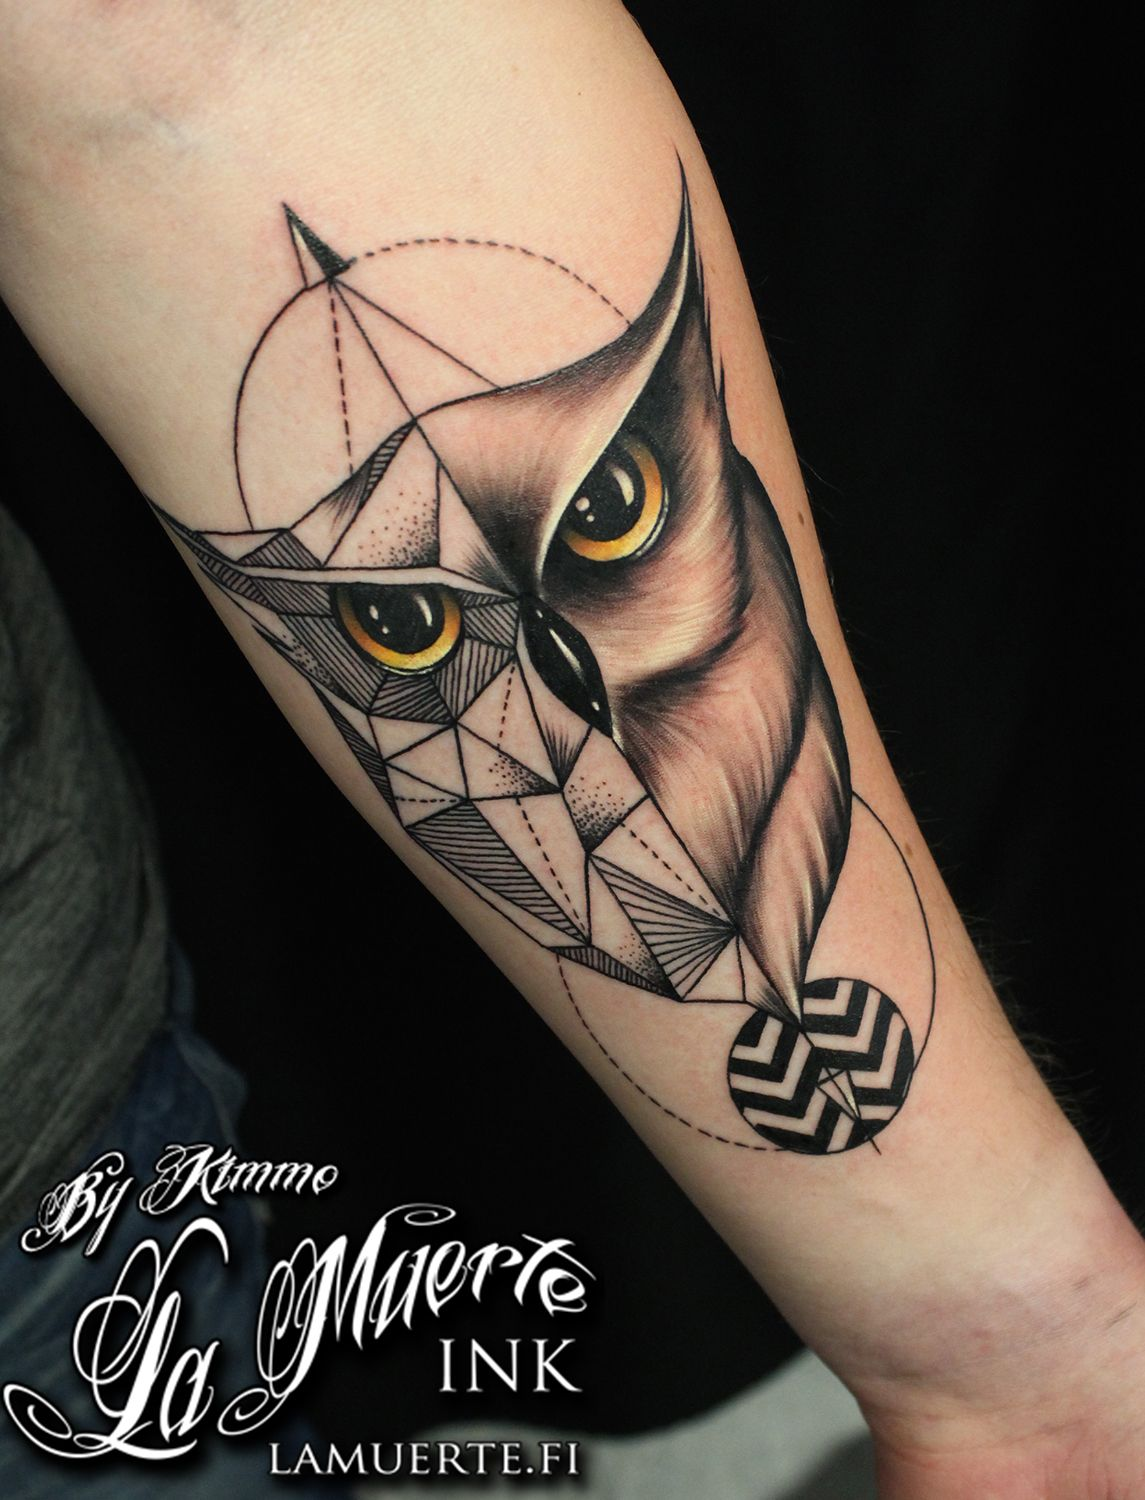 geometric owl tattoo by kimmo angervaniva la muerte ink. Black Bedroom Furniture Sets. Home Design Ideas